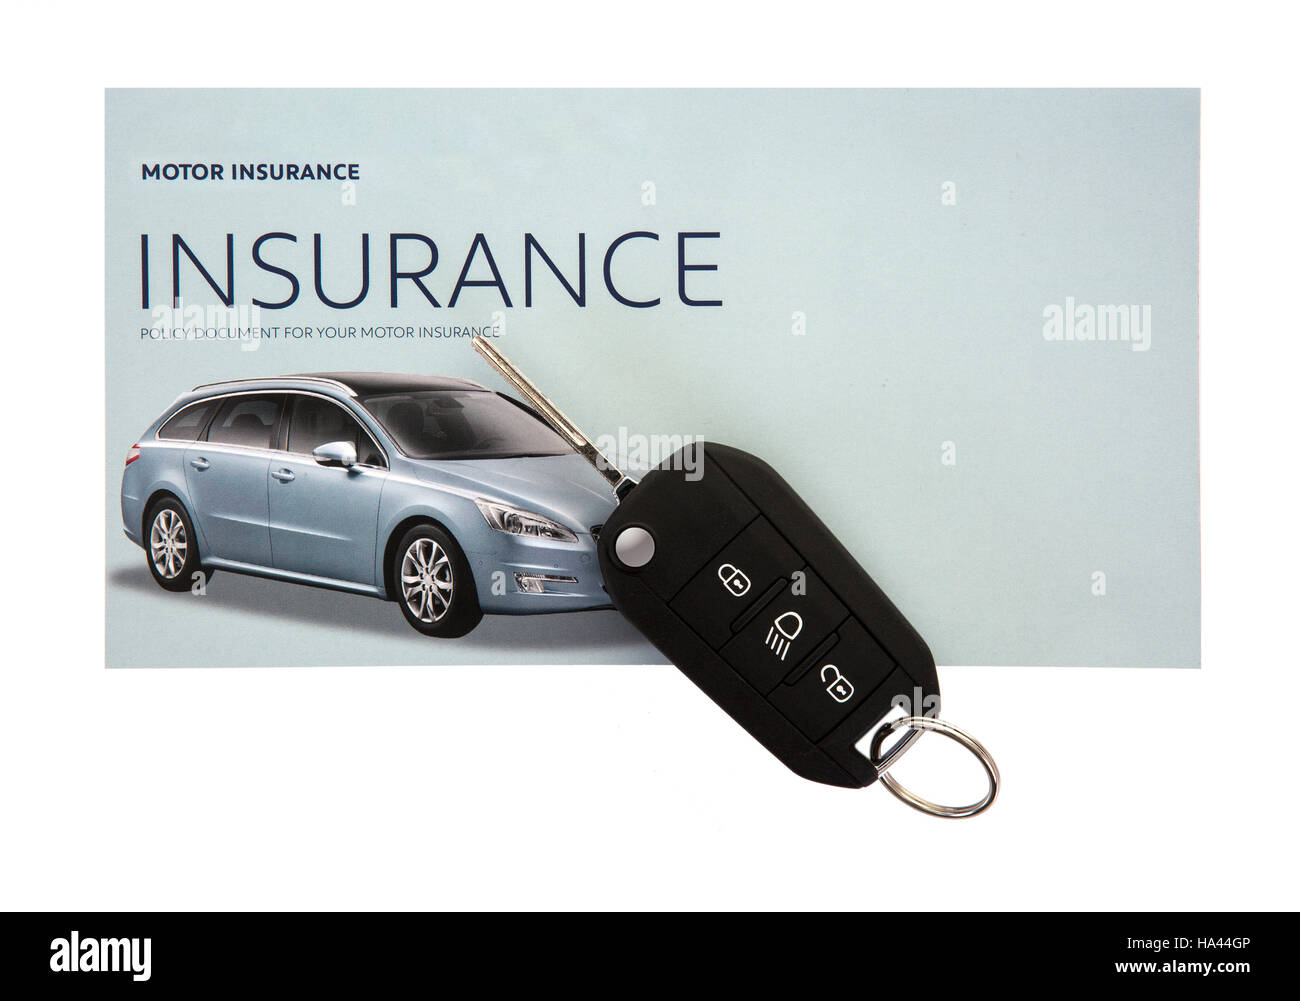 Certificate of motor insurance and policy schedule with car key - Stock Image